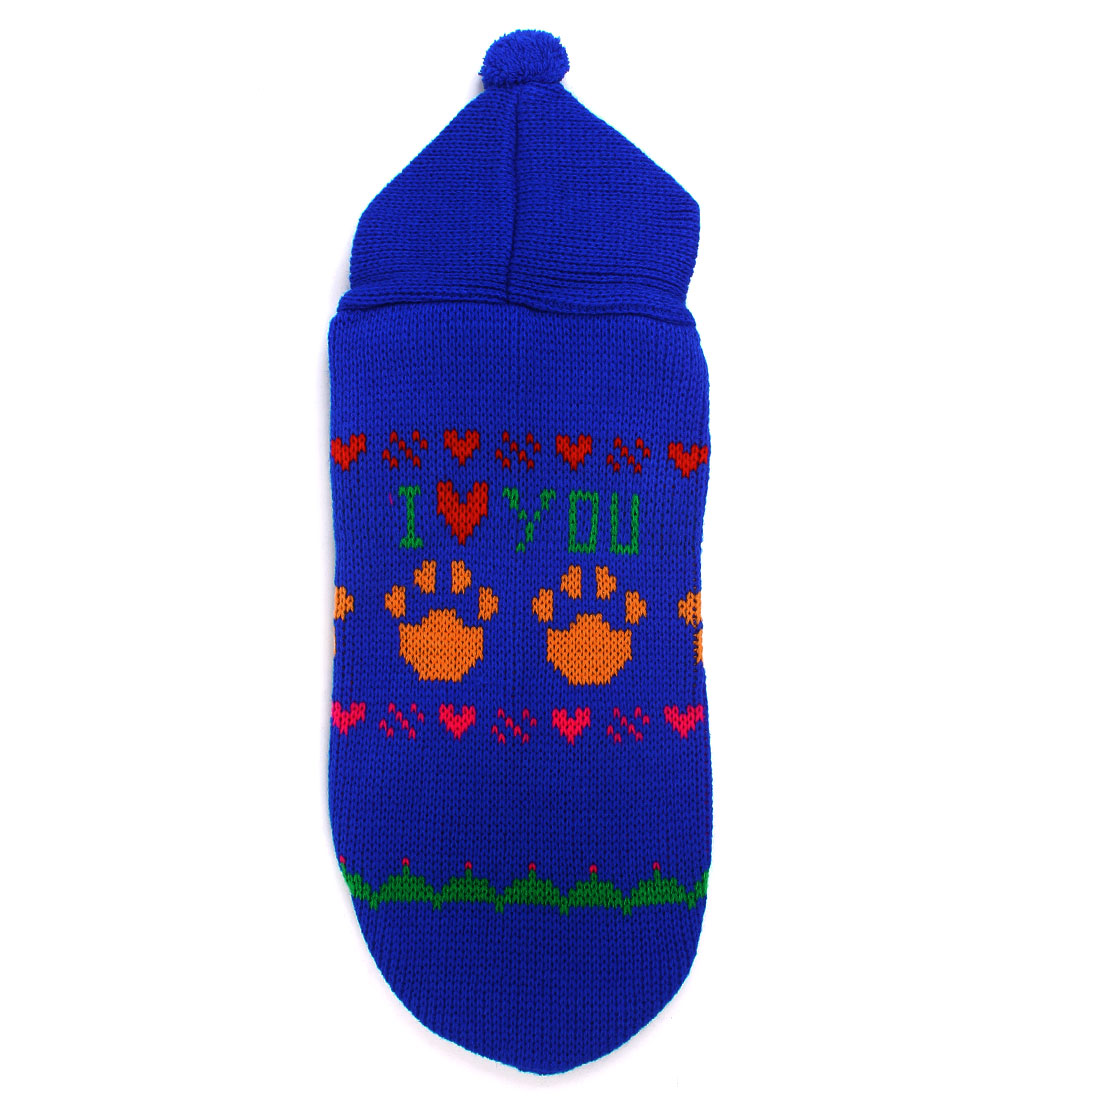 Blue Knit Paw Letter Printed Hoodie Pet Doggy Yorkie Clothes Sweater S